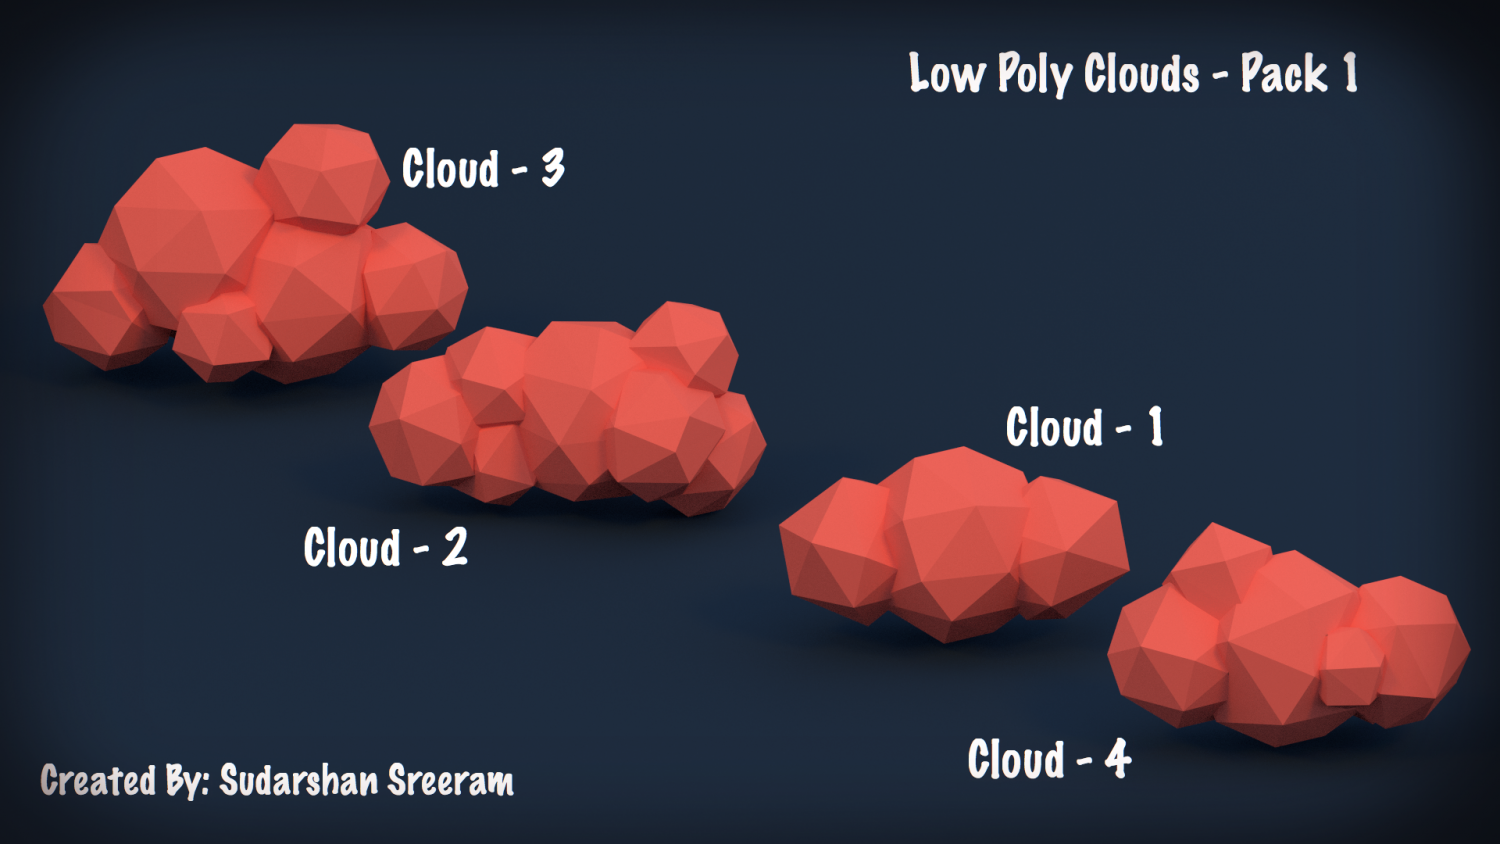 Low Poly Clouds - Pack 1 Free 3D Model in Environment 3DExport